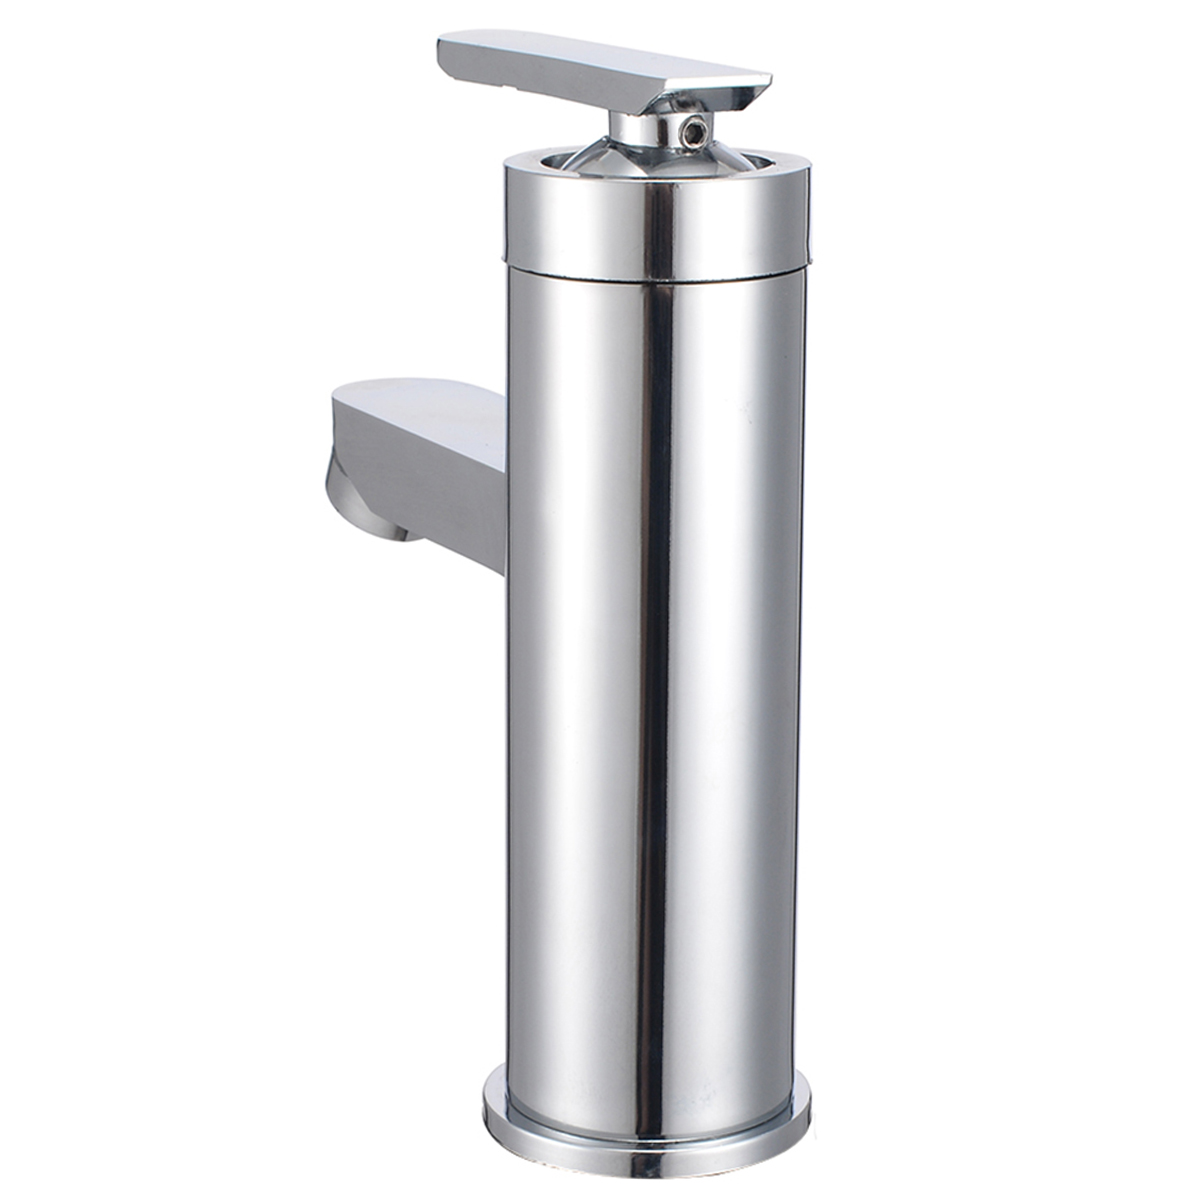 Mayitr Waterfall Bathroom Faucet Basin Sink Faucet Chrome Single Handle Mixer Tap Cold Hot Water For Kitchen Bathroom Supplies